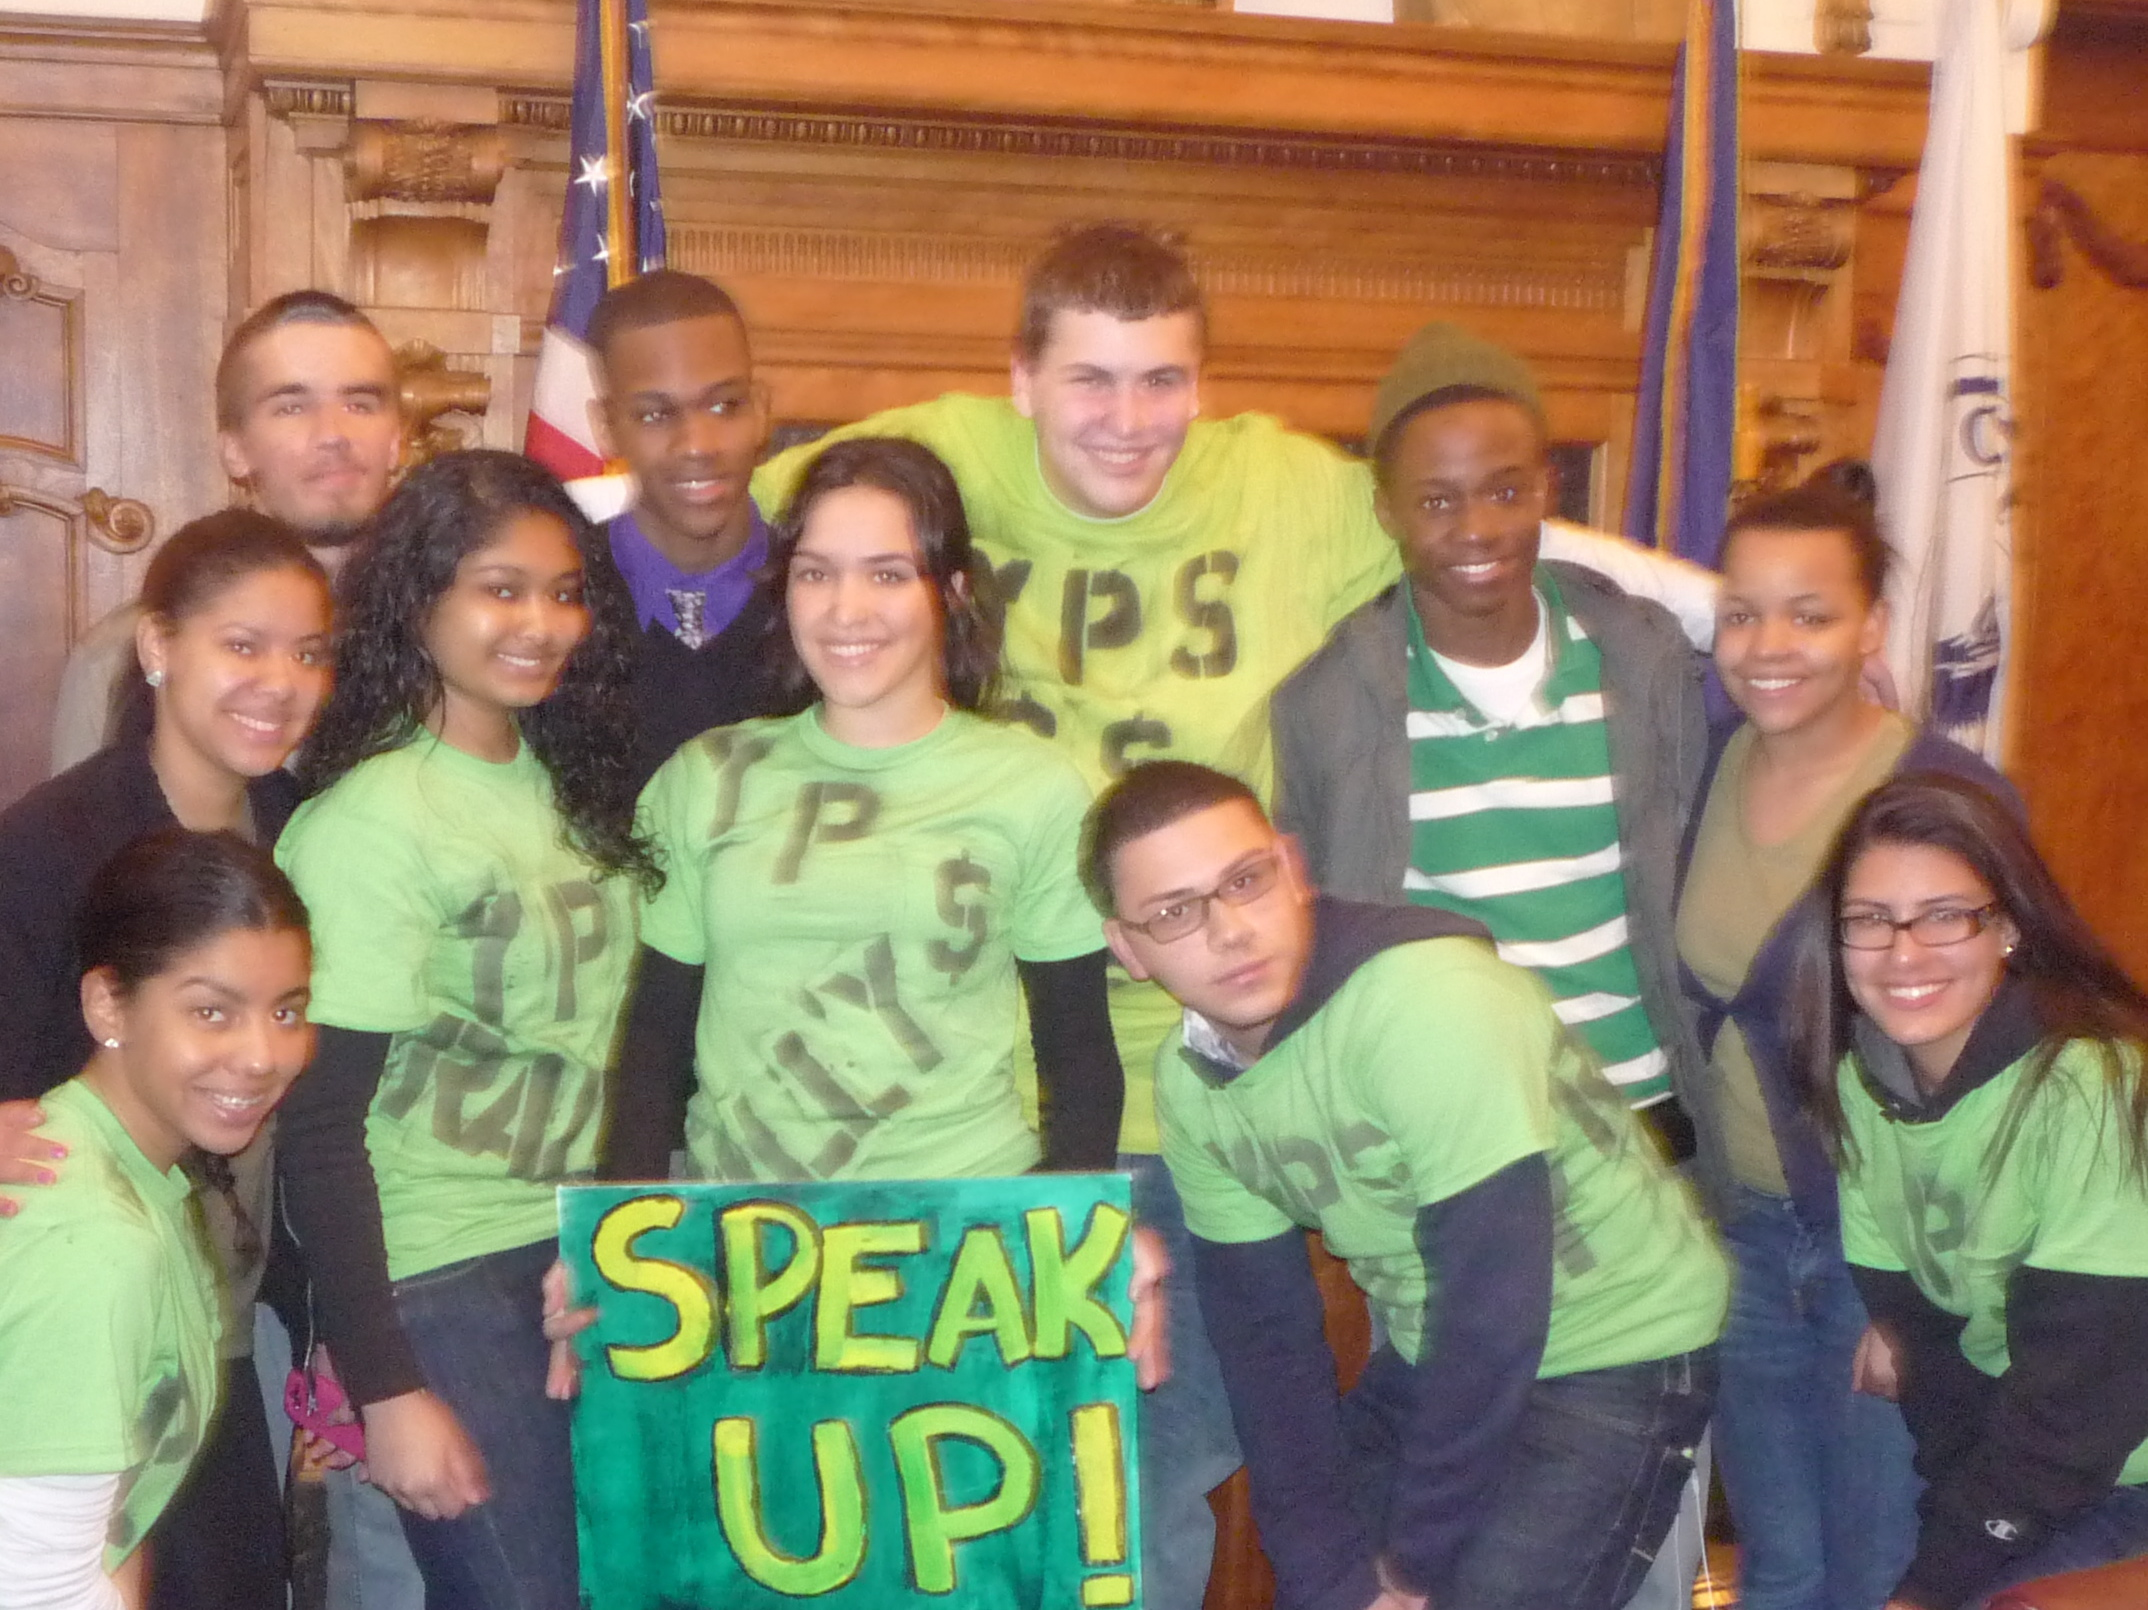 The Yonkers high schools' student body leaders who organized the March 30 protest at City Hall against state cuts to Yonkers' education funding.